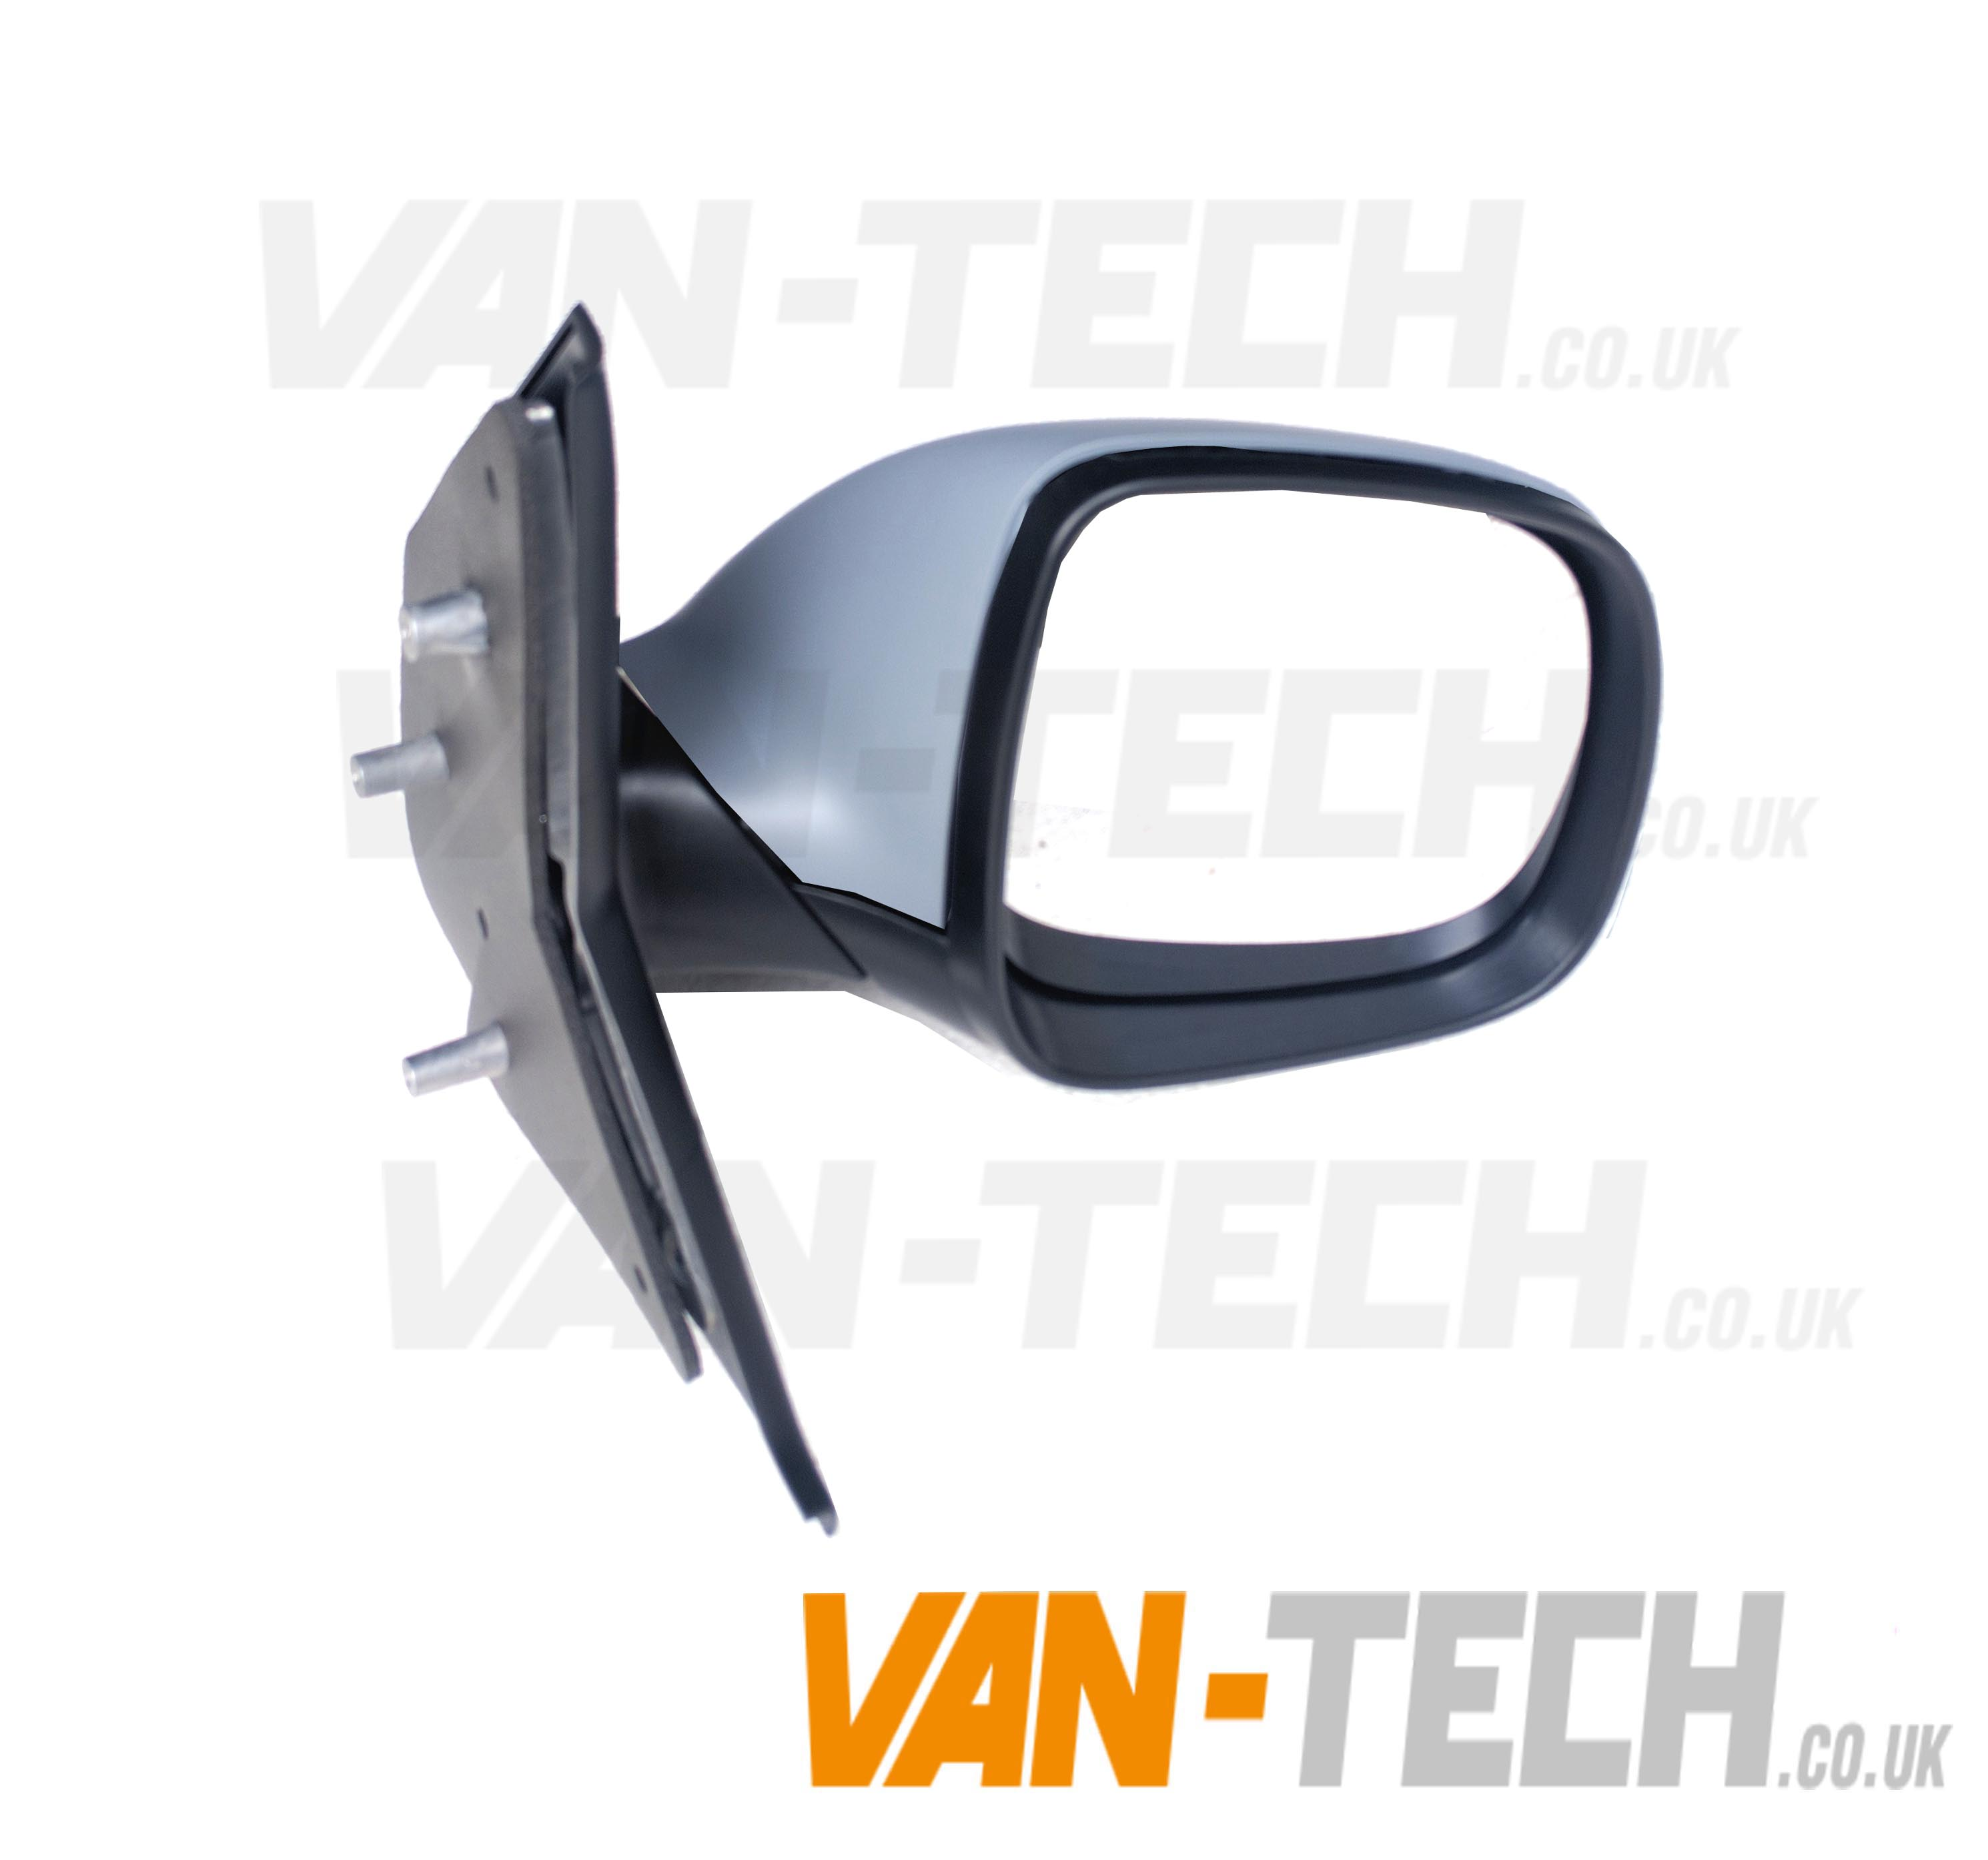 Vw Transporter 2010-2015 Door Wing Mirror Electric Black Passenger Side New